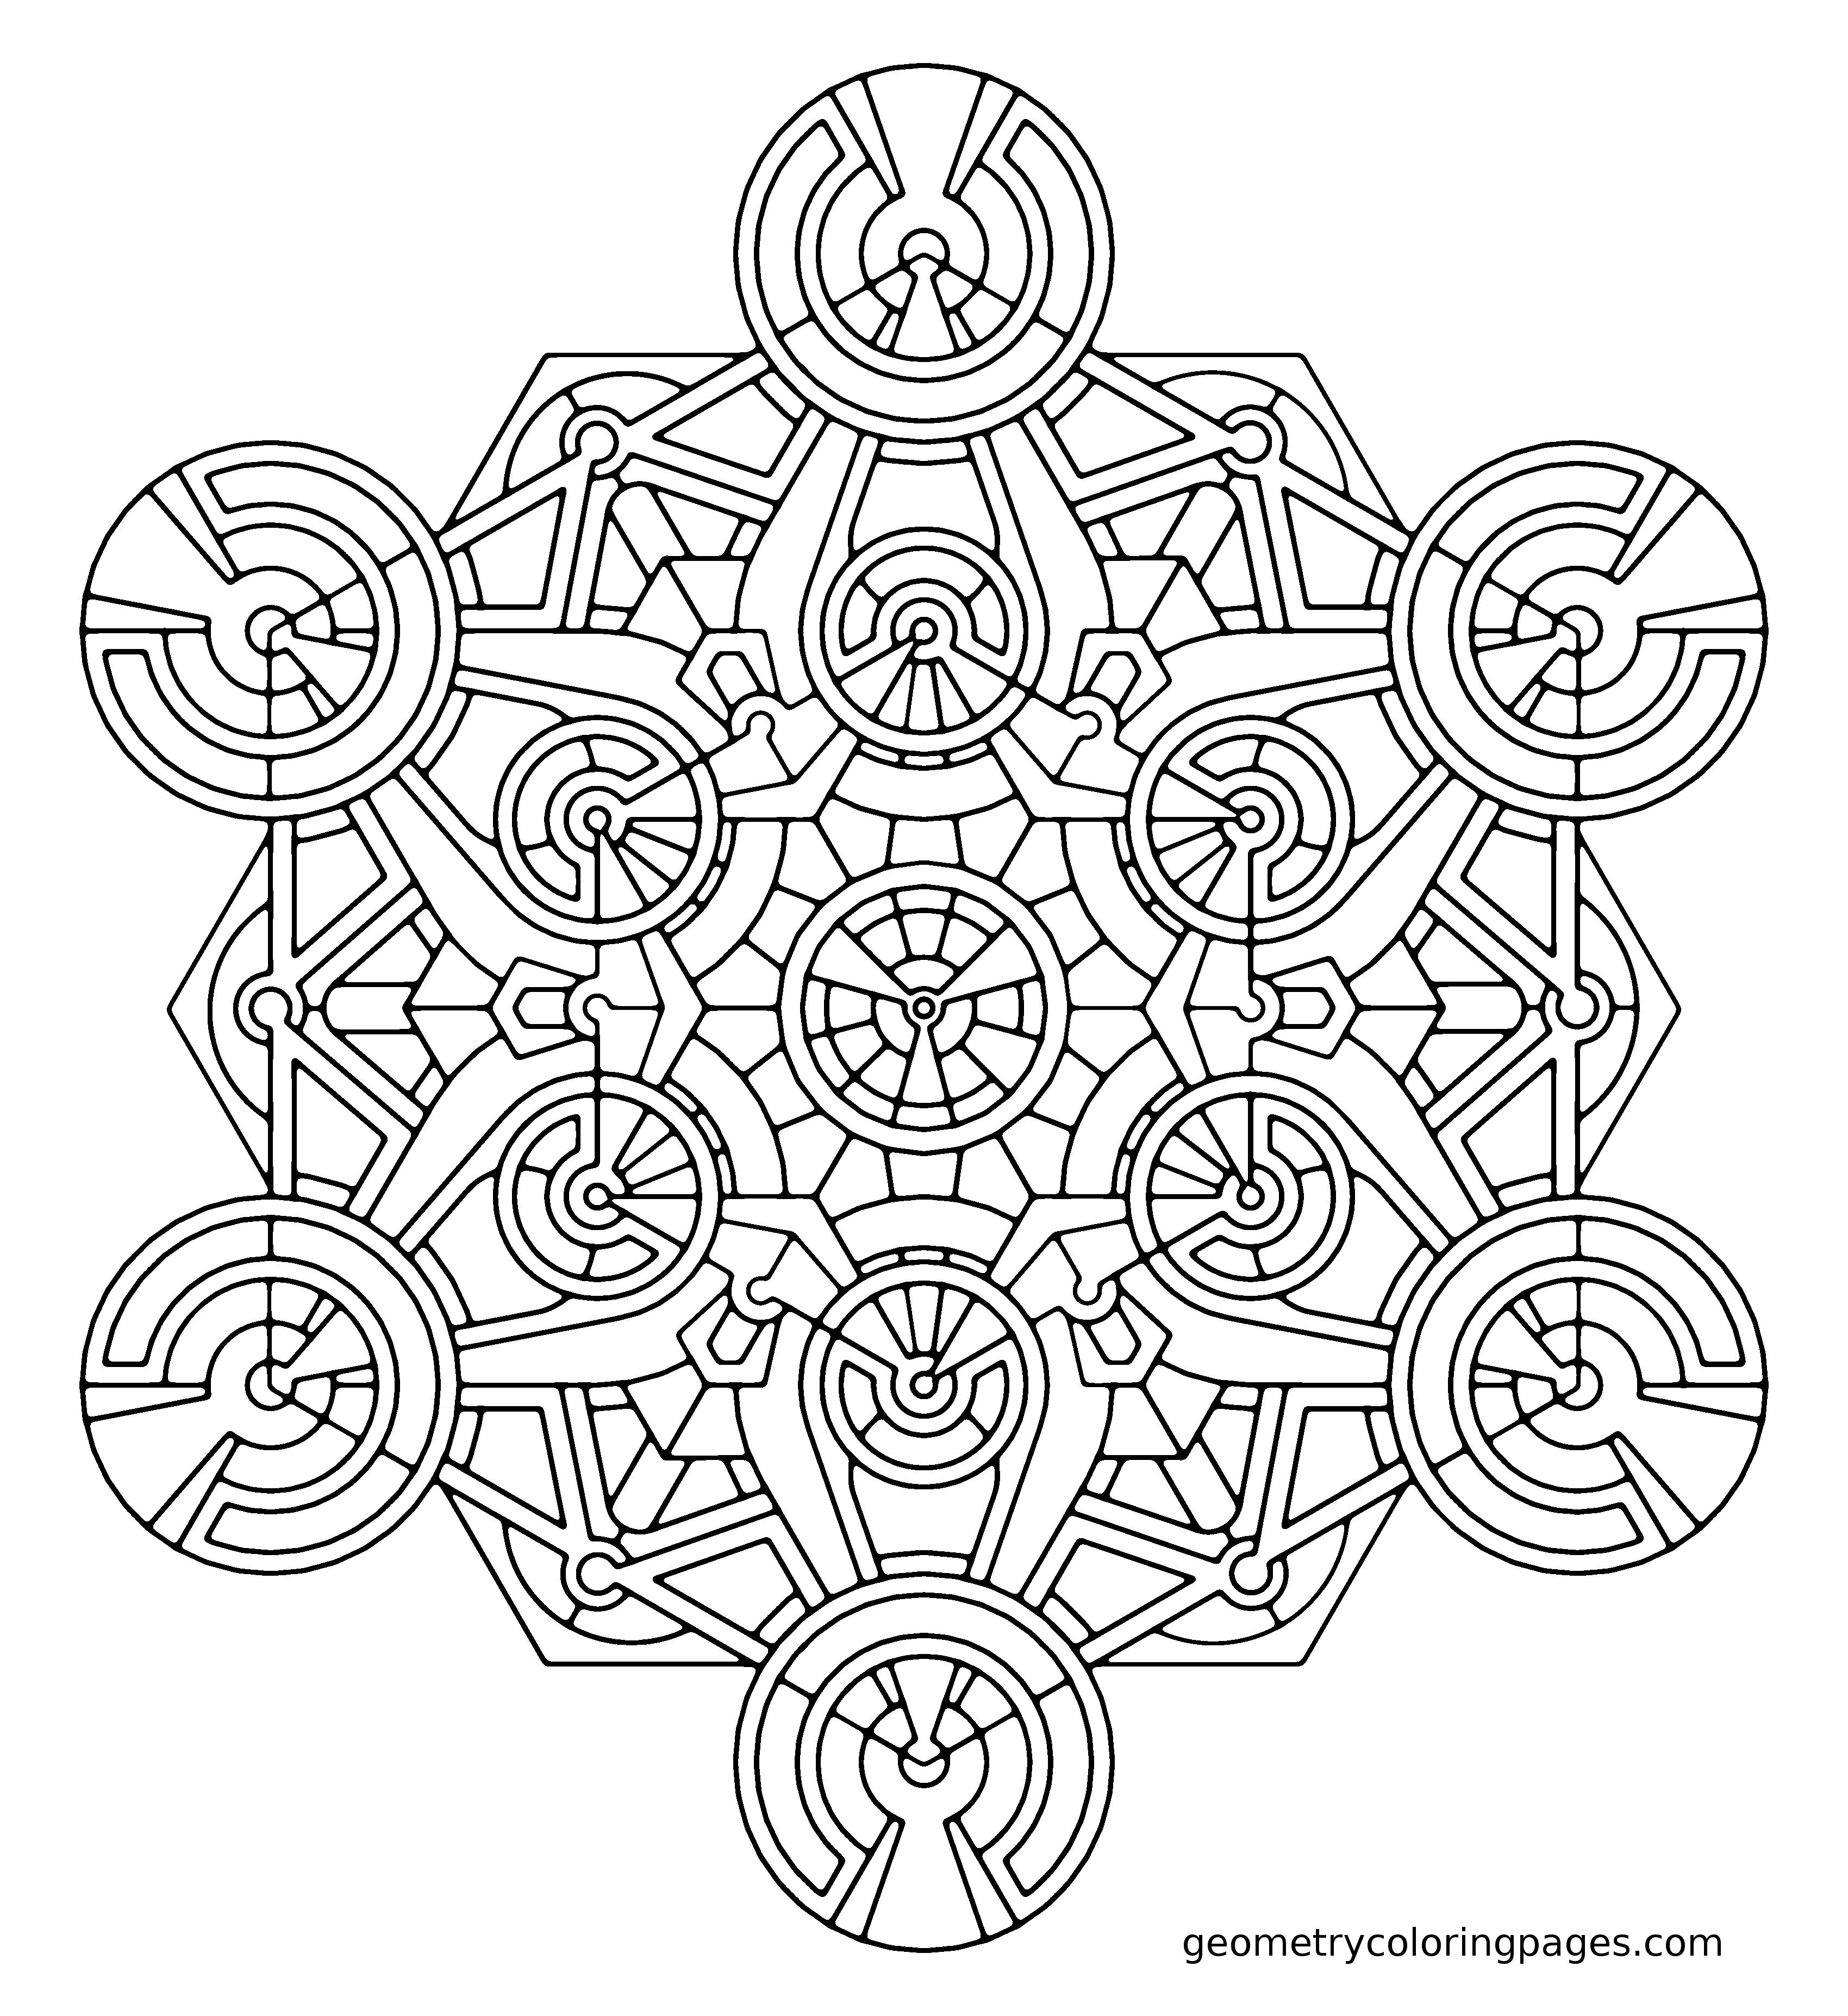 Coloring page metatron s generator from geometrycoloringpages com